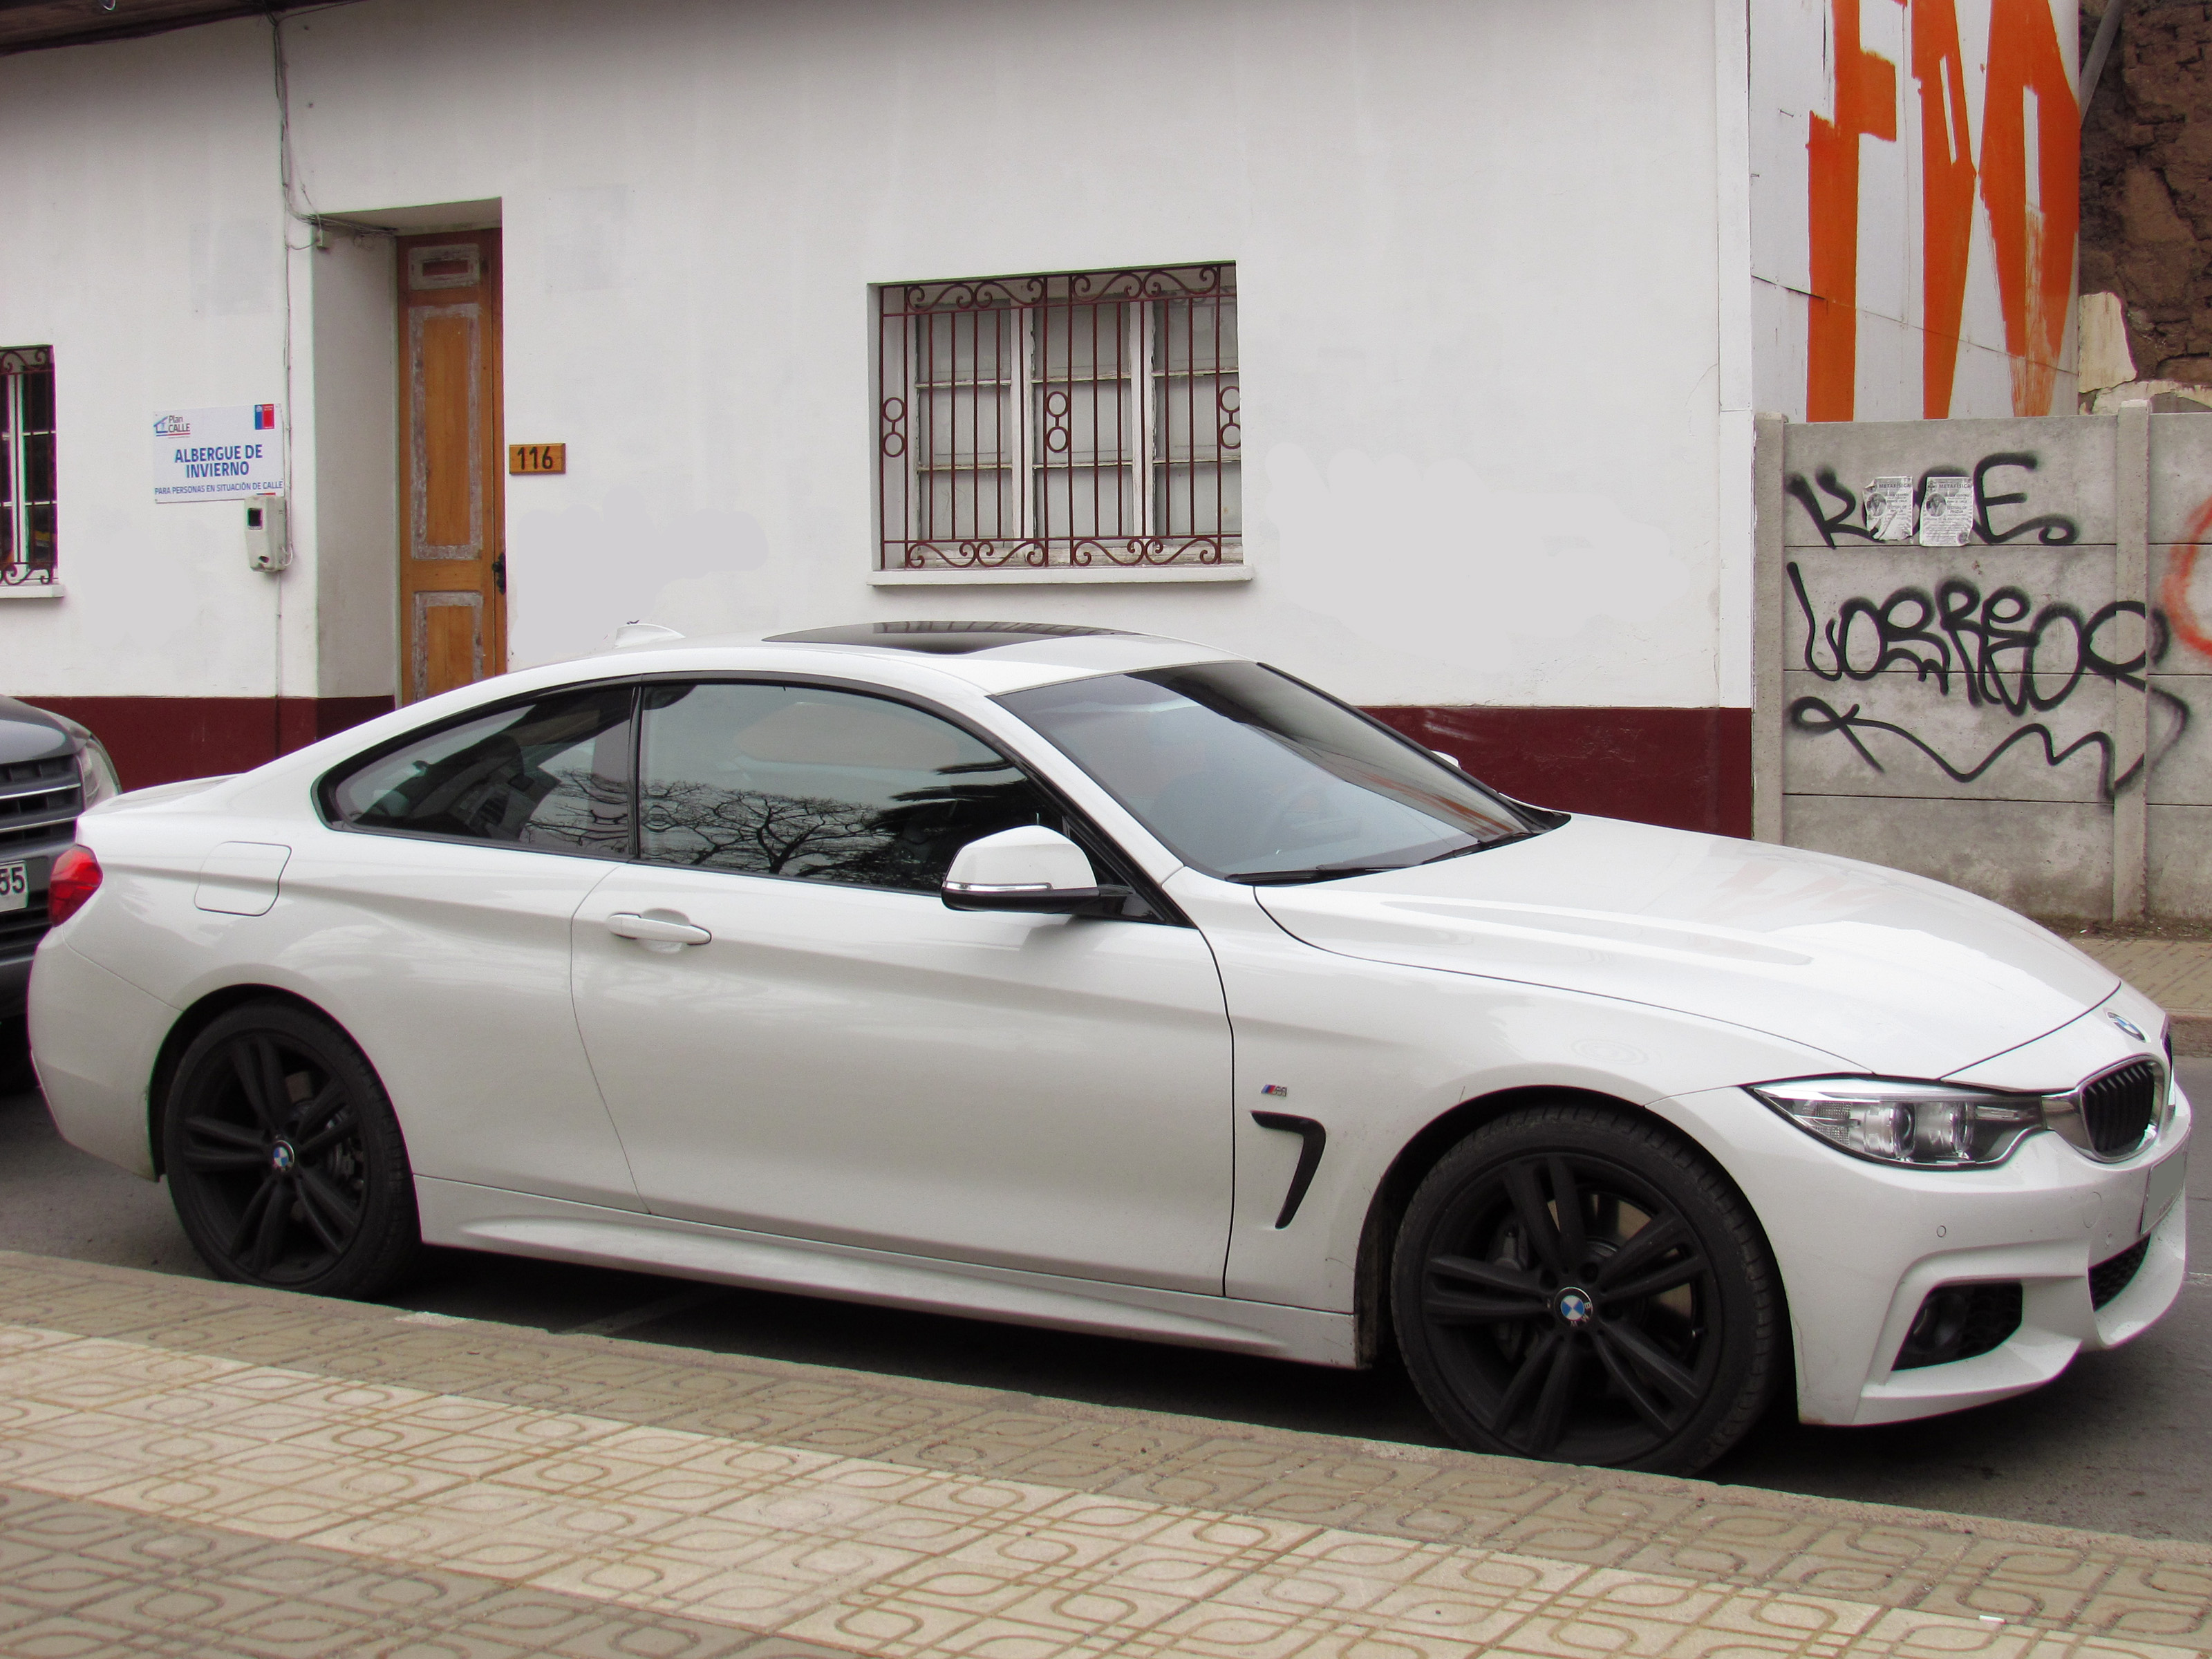 file:bmw 435i m sport 2014 (16208783496) - wikimedia commons